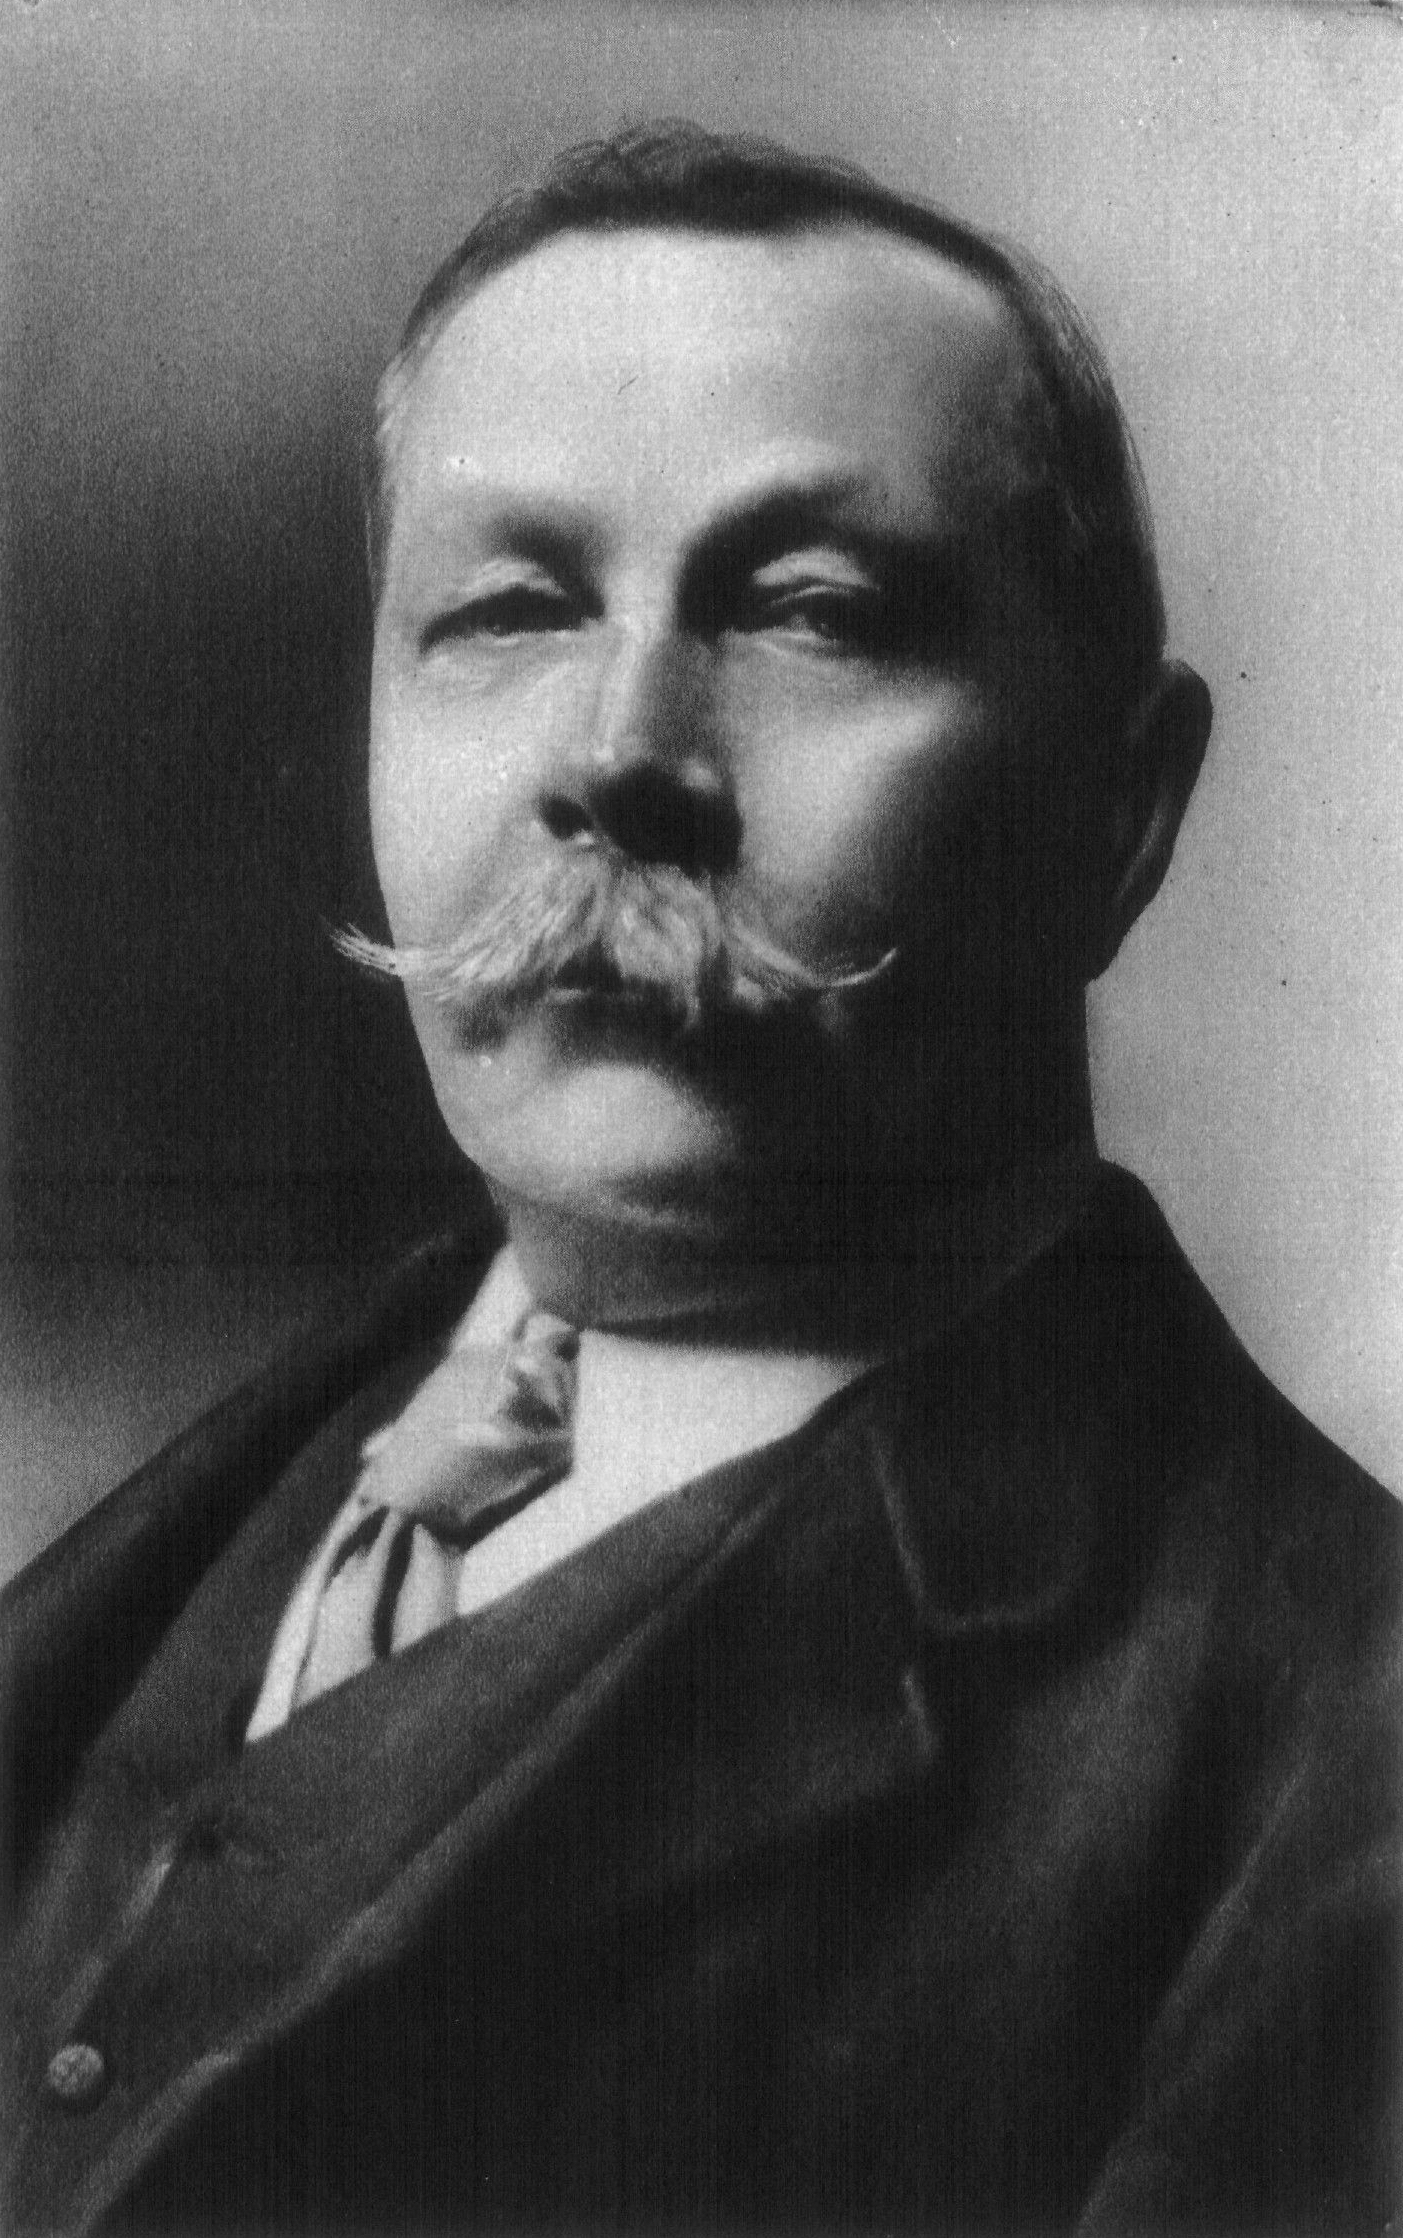 """a comparison of sir arthur conan doyles literary works A comparison of writing styles and themes from sir arthur conan doyle's """"the  in his own writing, doyle commented on poe's work, specifically mentioning his detective character dupin in a study in scarlet, the first short story to feature doyle's character sherlock holmes in it, dr watson, tries to complement sherlock holmes."""